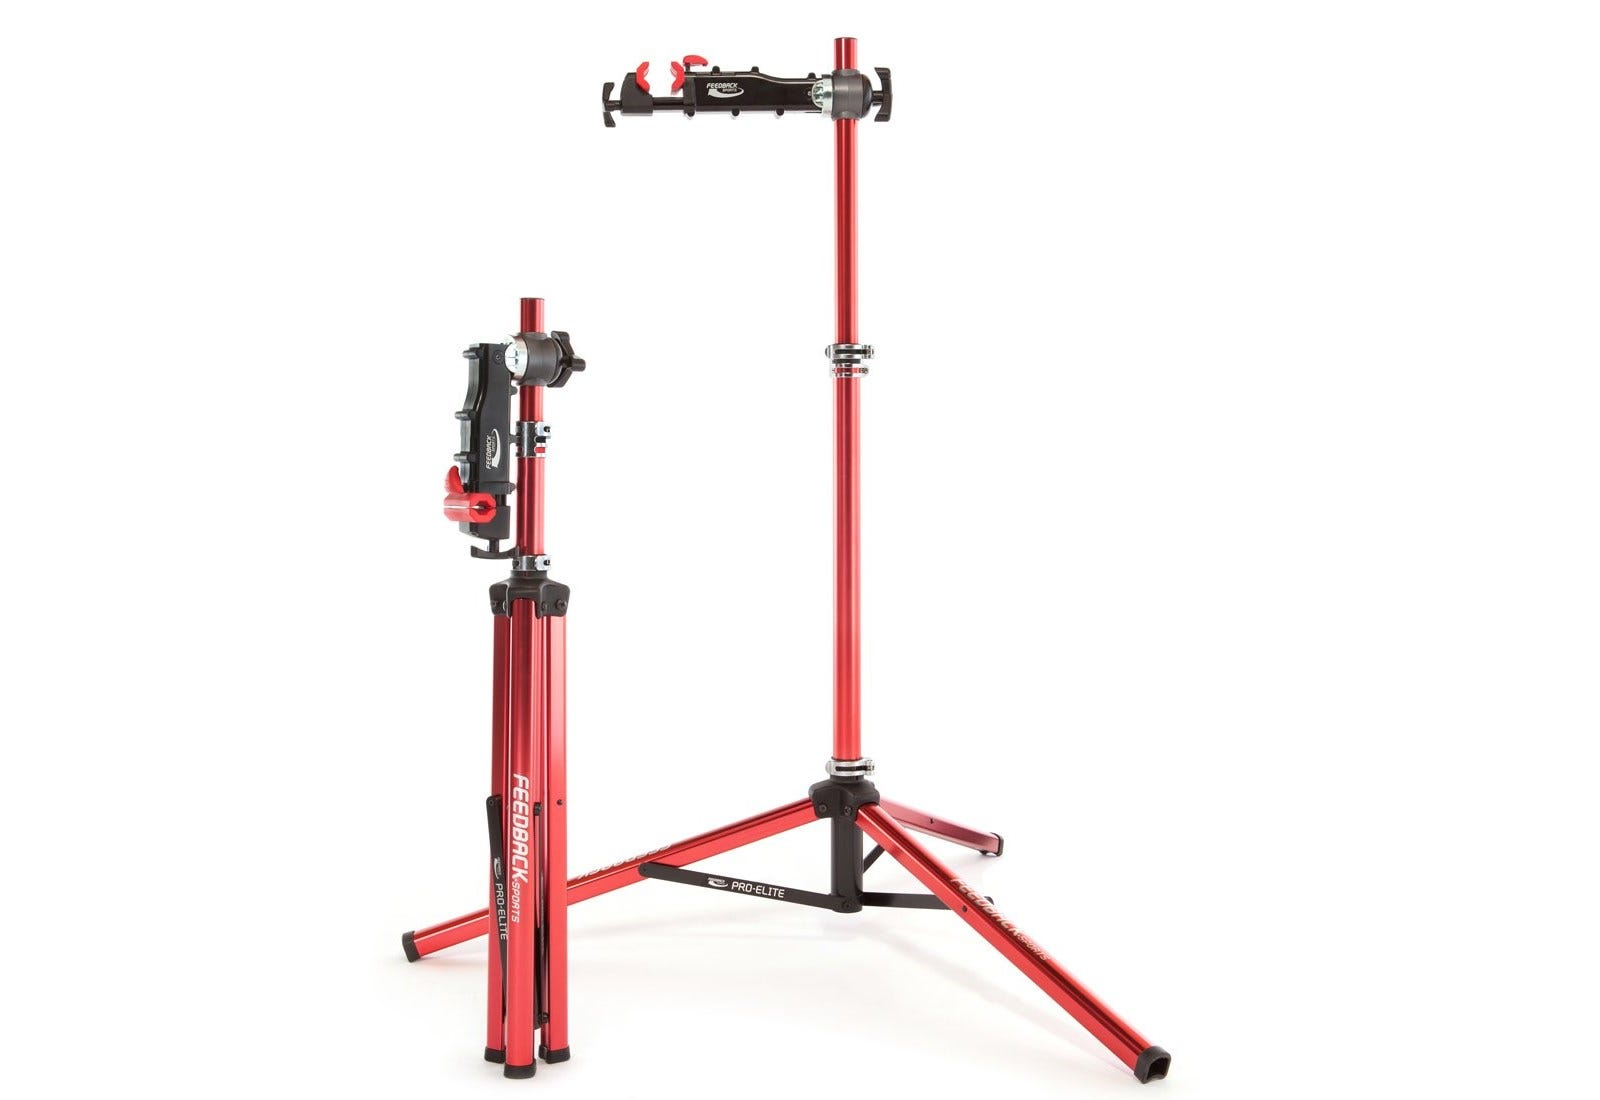 Feedback Sports Pro Elite bike stand.